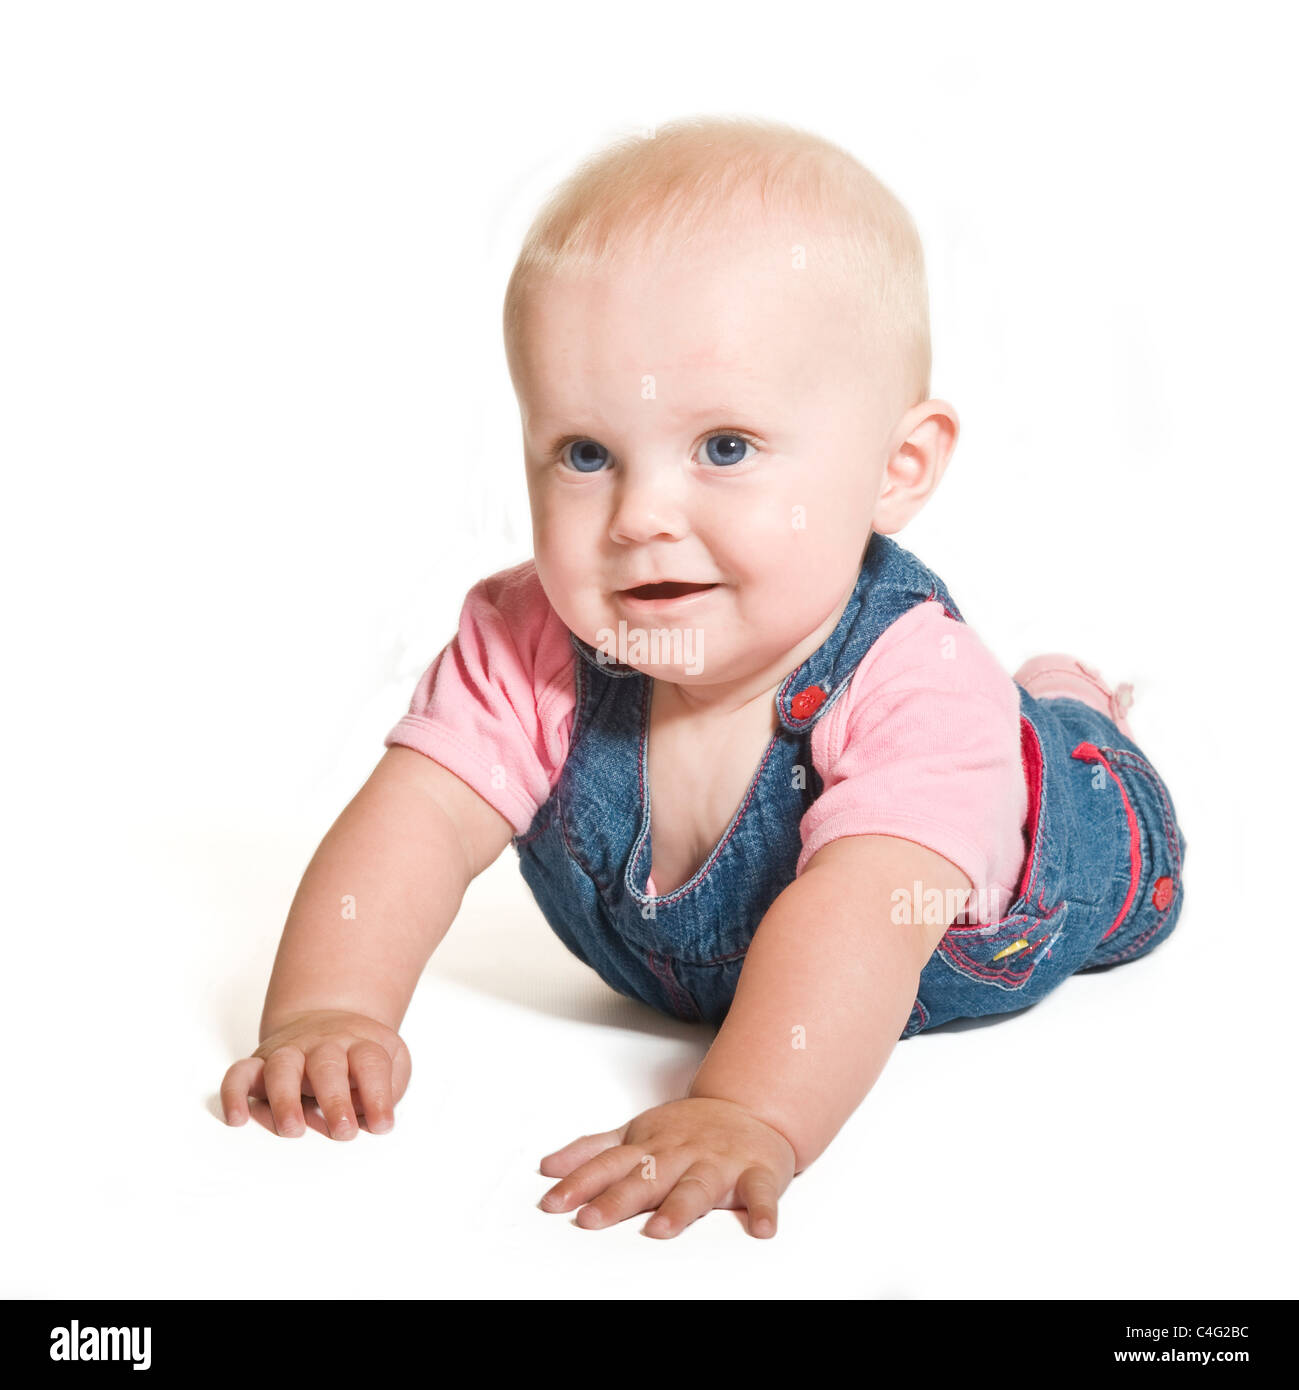 A cute 1 year old baby girl with blue eyes wearing denim and pink smiling  against a pure white (255) background.